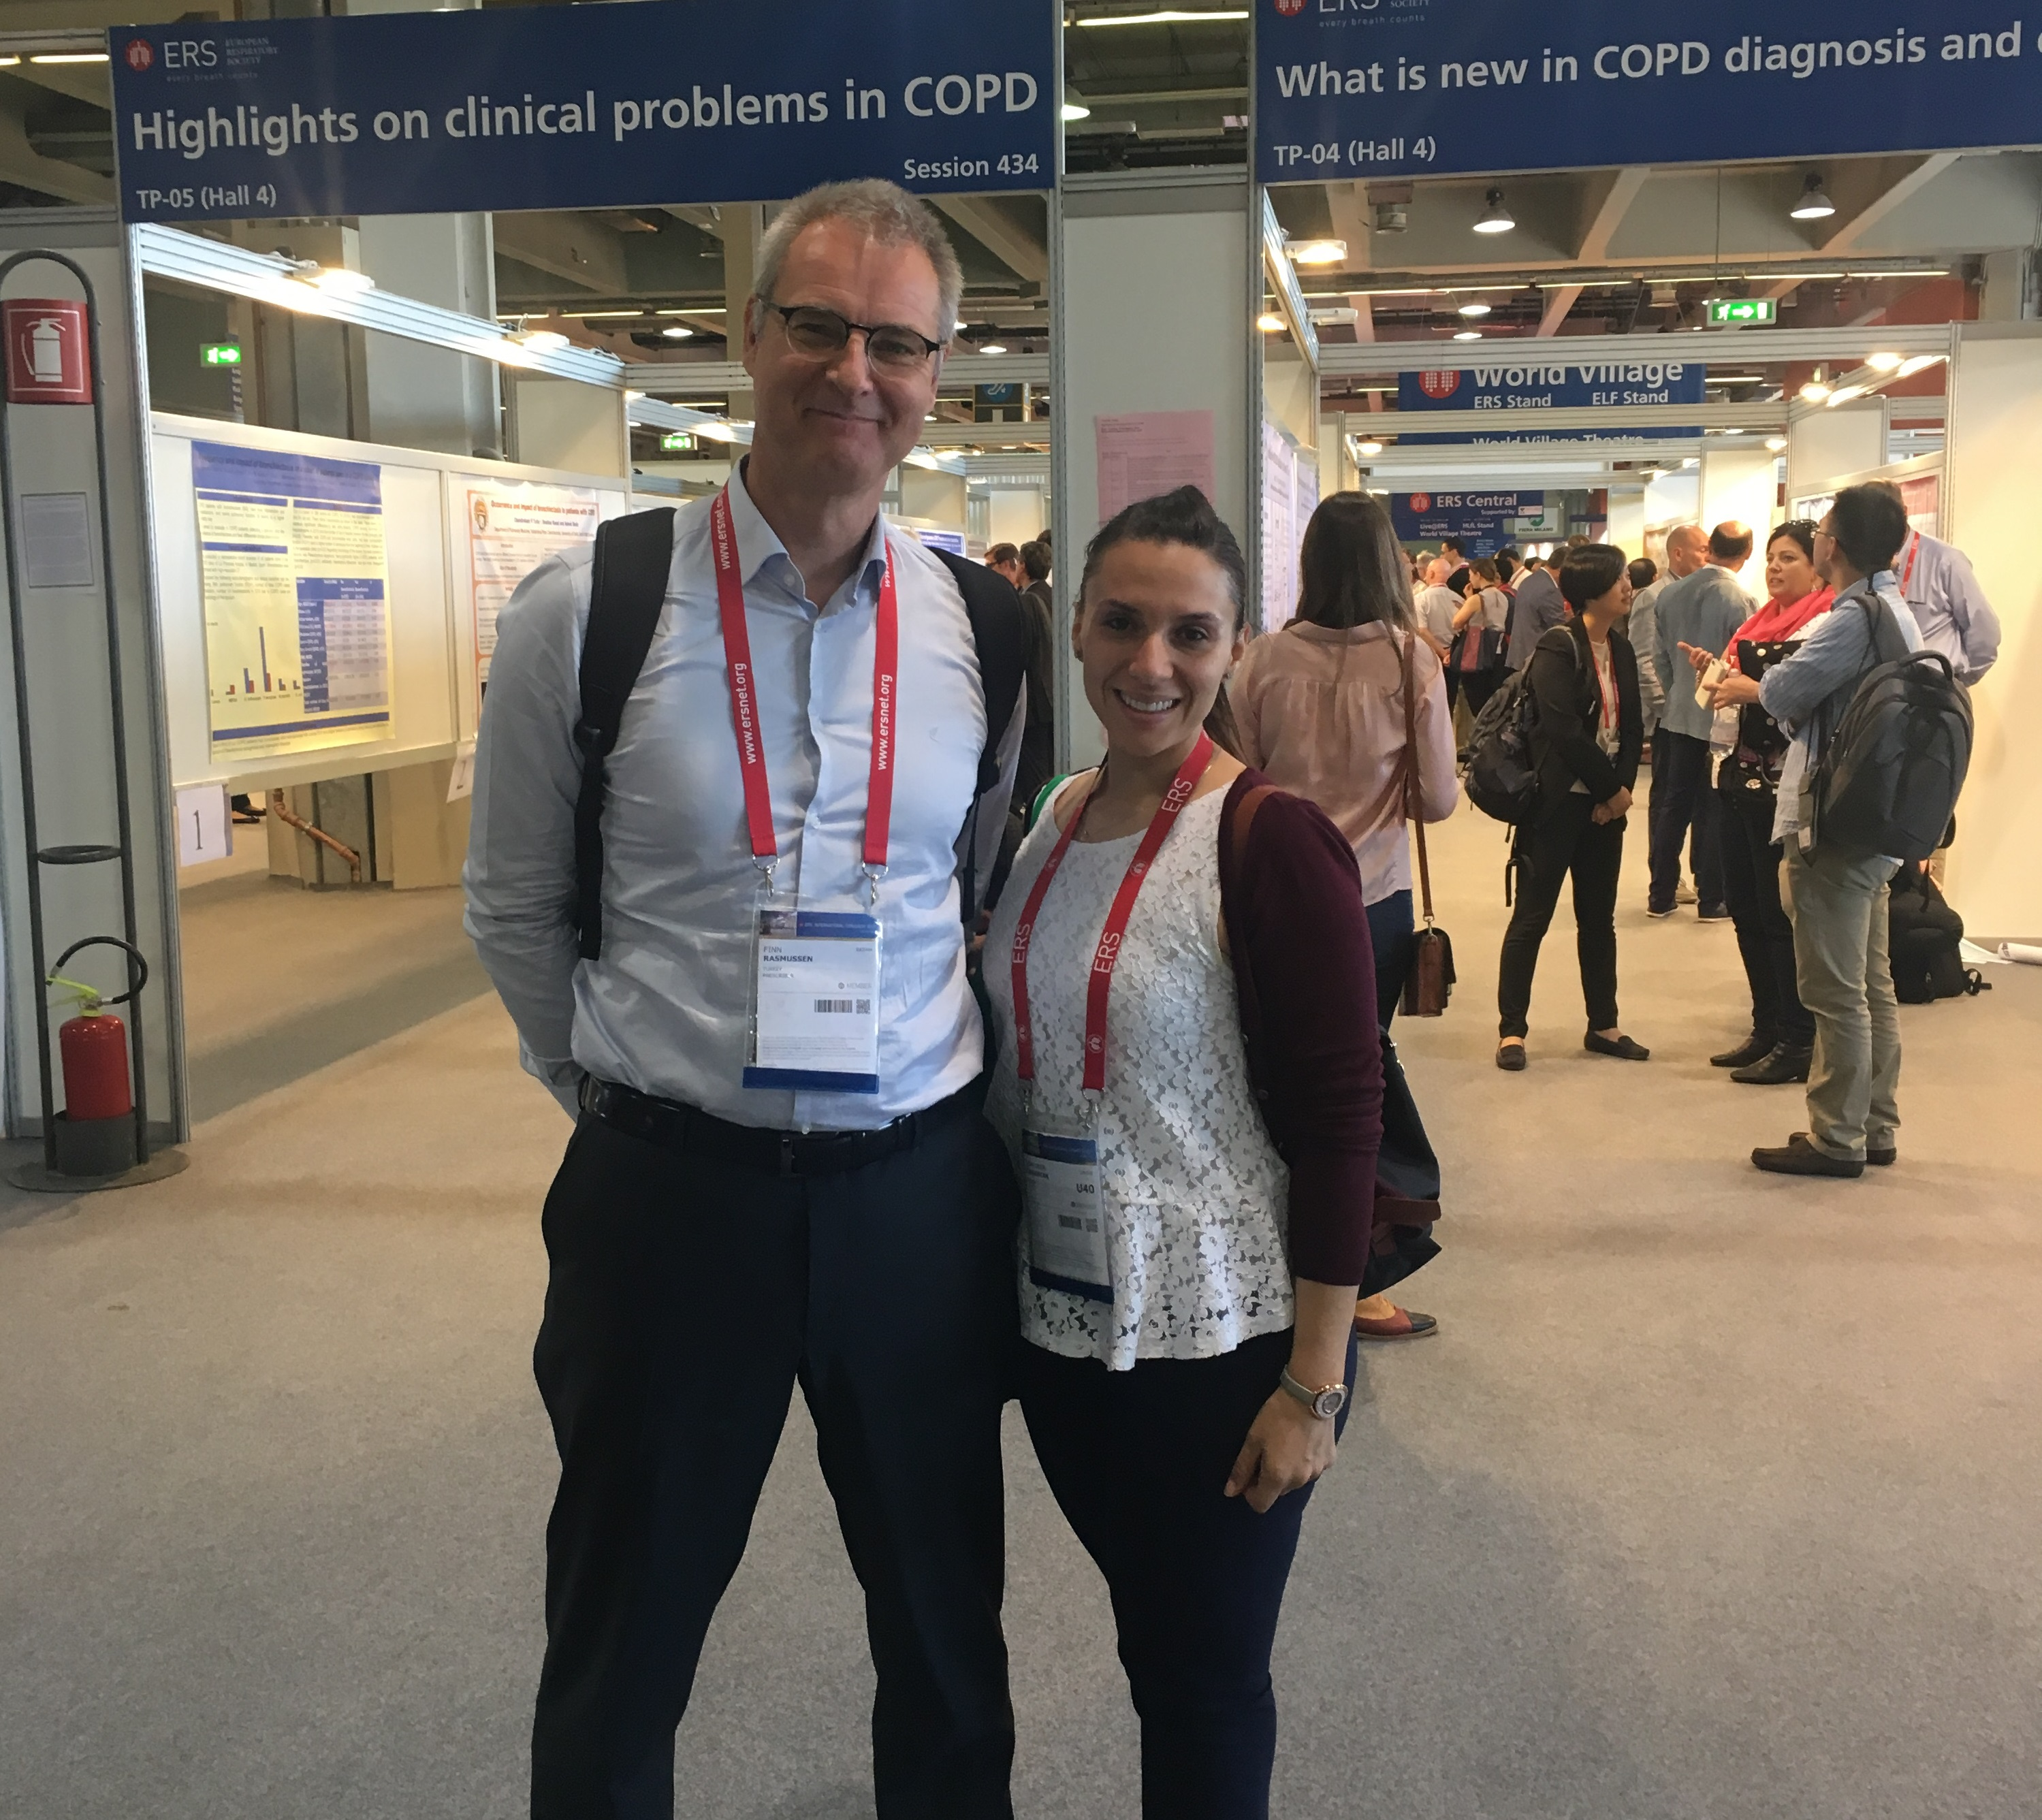 Near East University was represented at the International Congress on Pulmonary Diseases that held in Milan